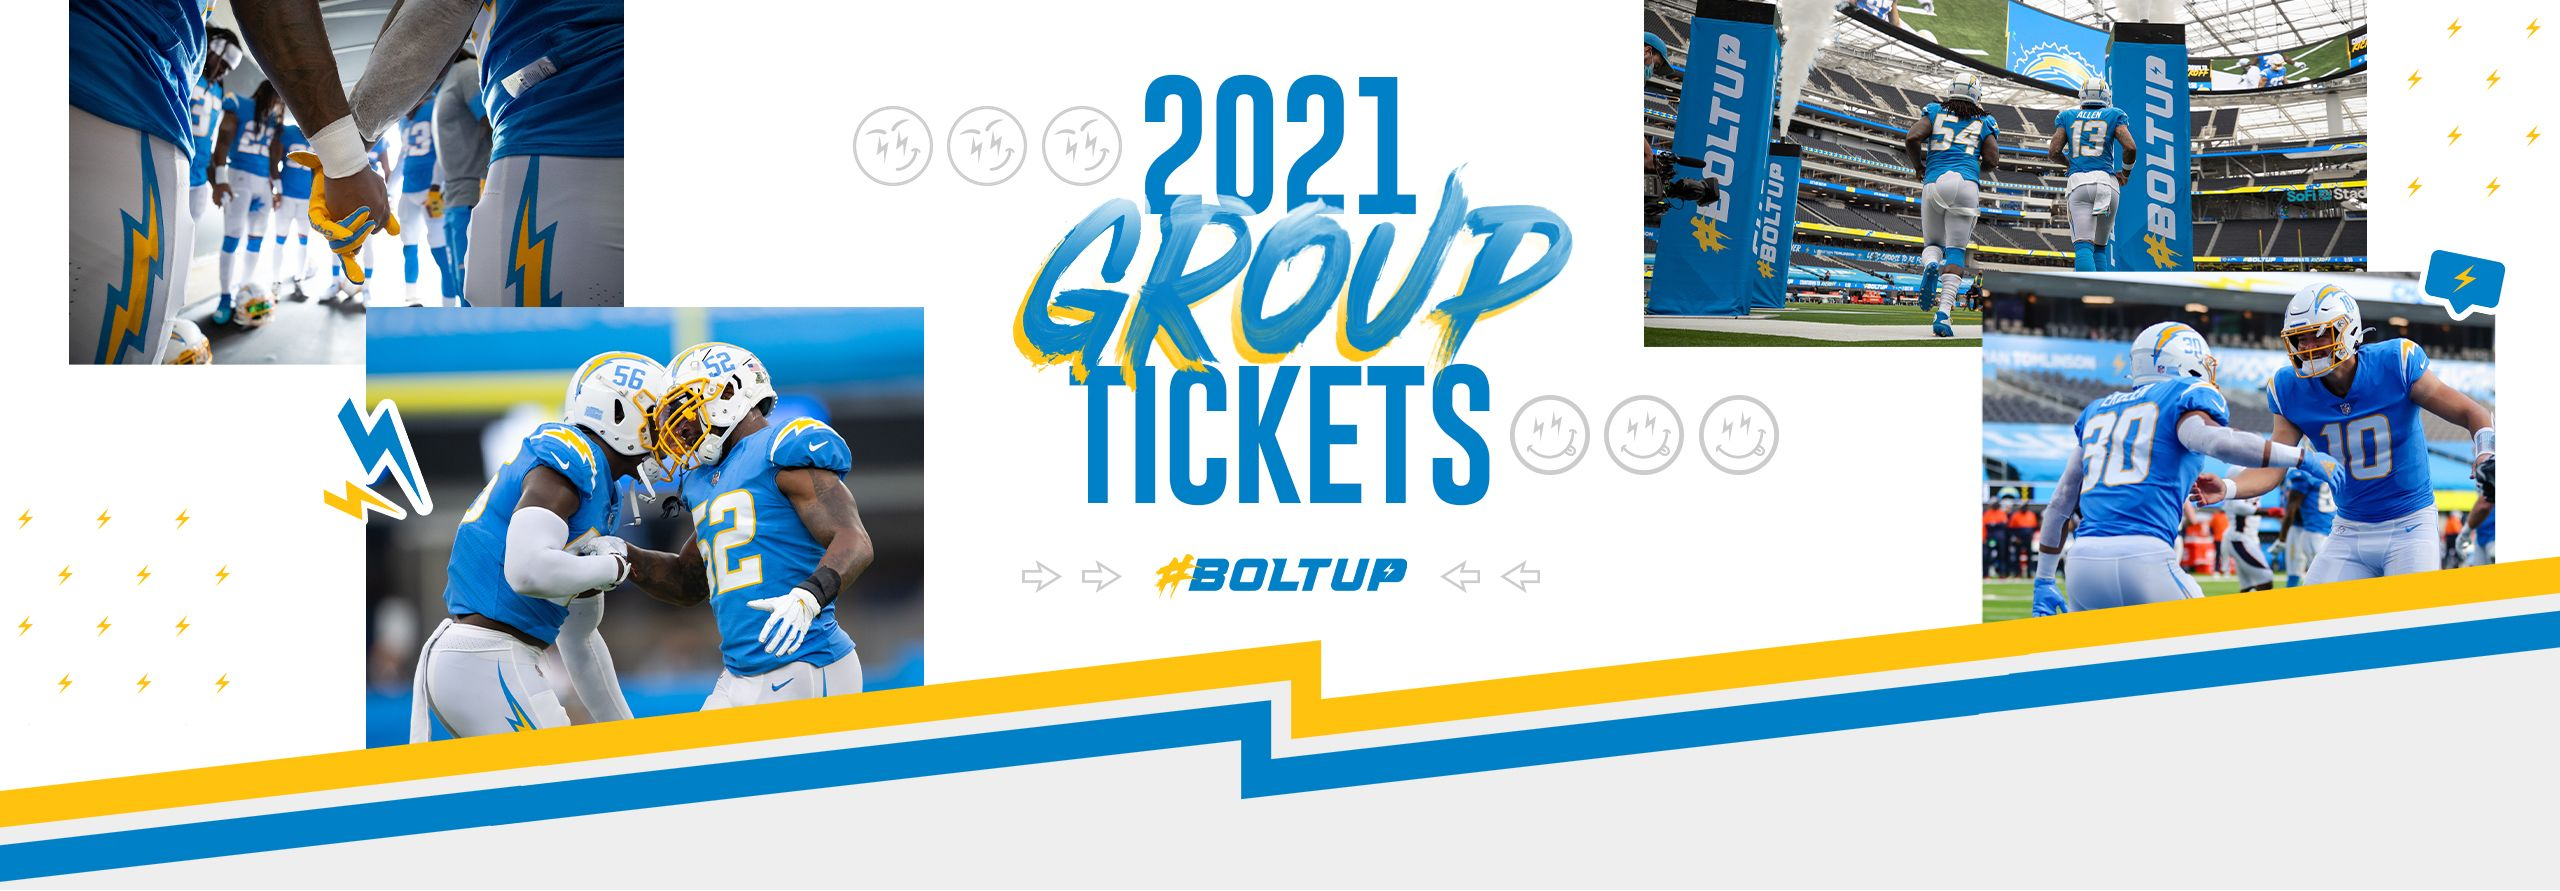 210112_Site_2021_Group_Tickets_Header